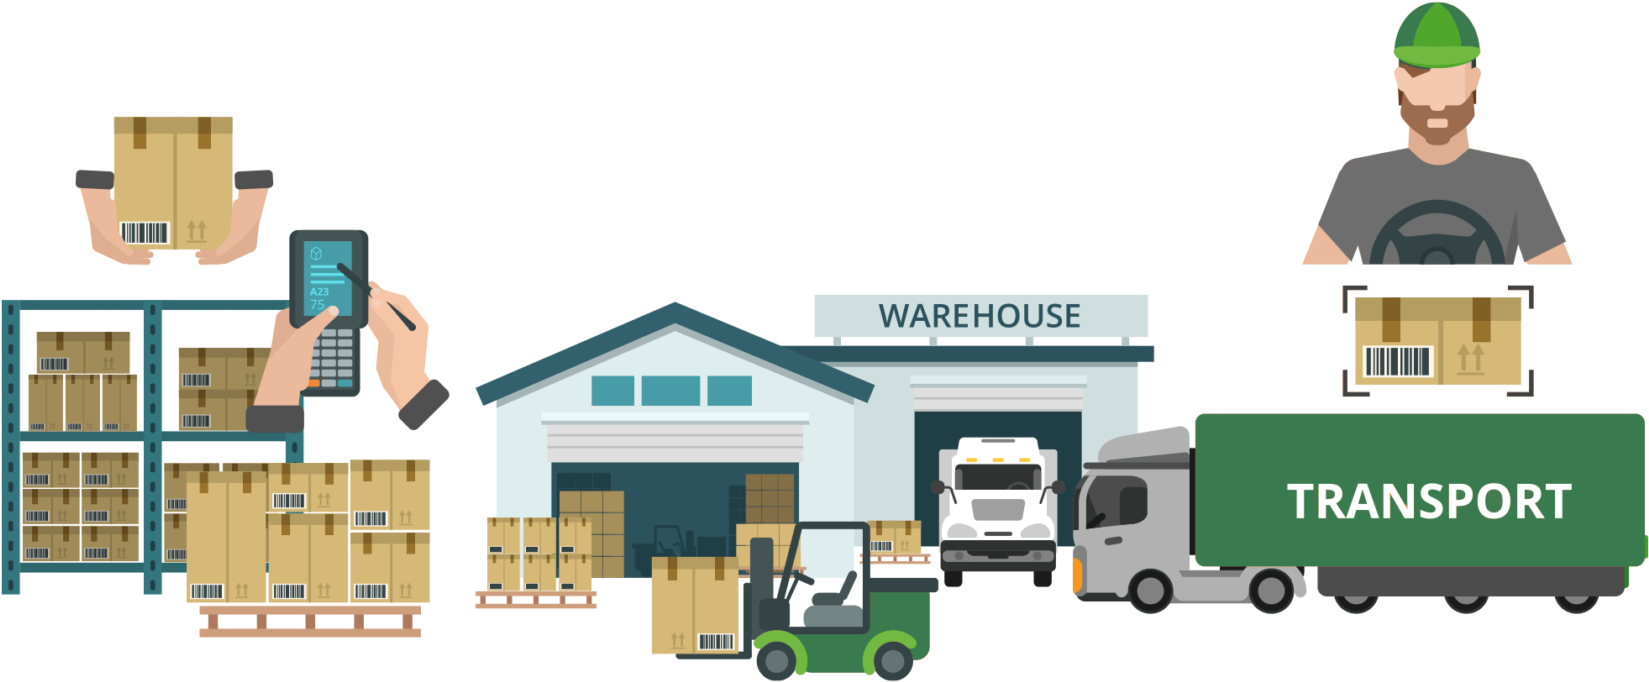 Negative Business Impact Of The Warehouse Management System